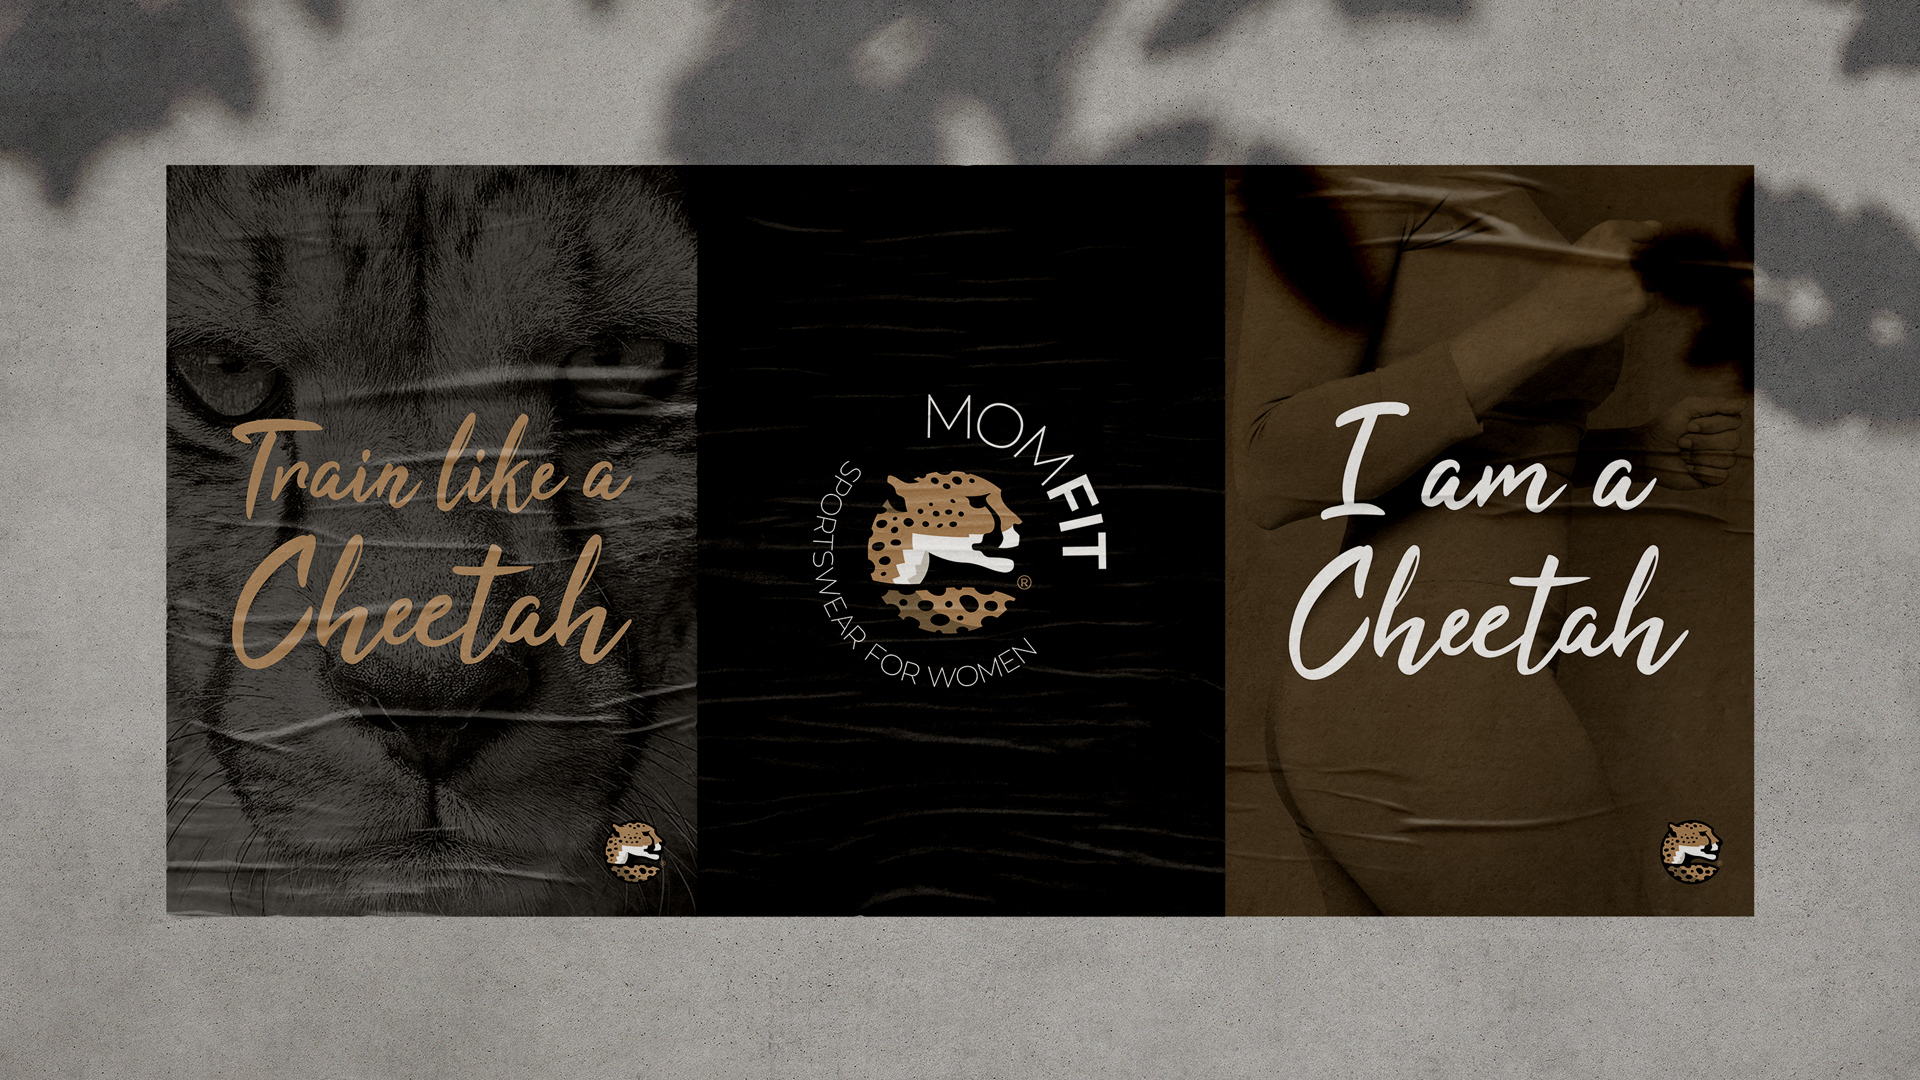 Sports Brand Design messaging for MOMFIT Sportswear in posters with Train like a Cheetah and I am a Cheetah written with the brand's logo